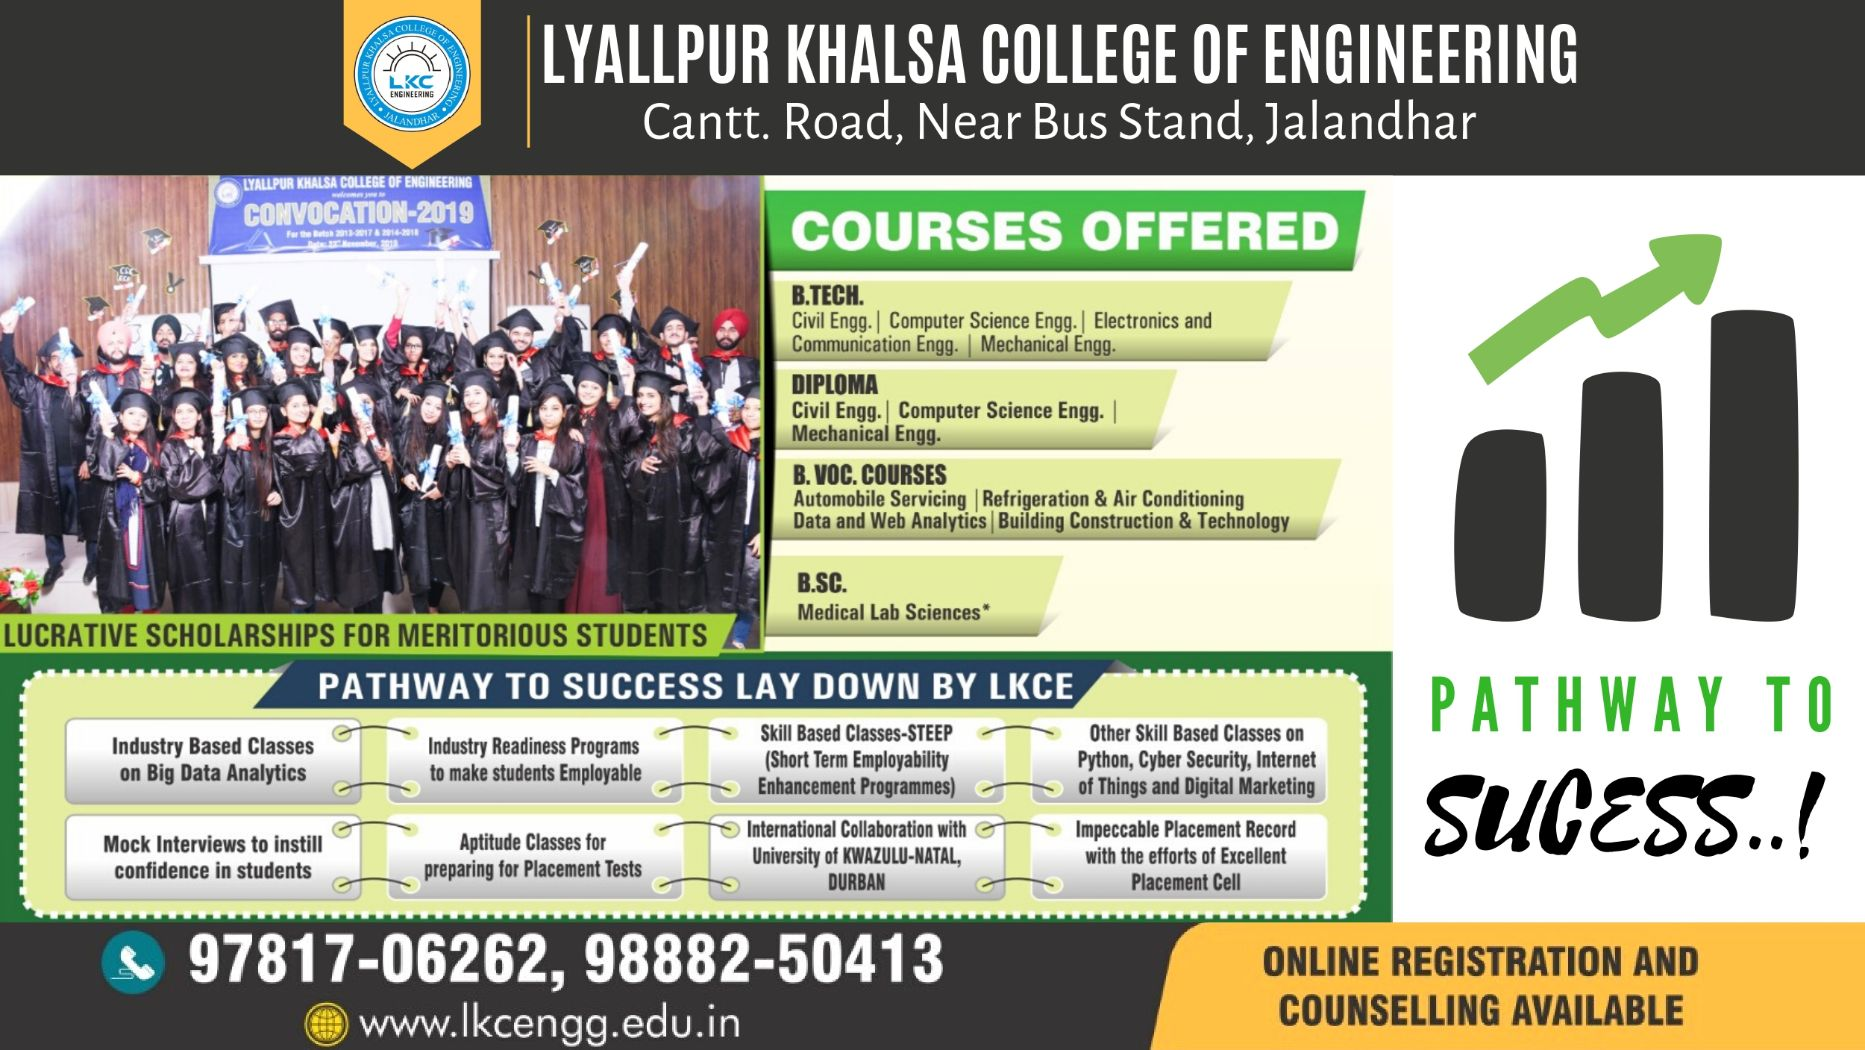 Lyallpur Khalsa College of Engineering, Jalandhar